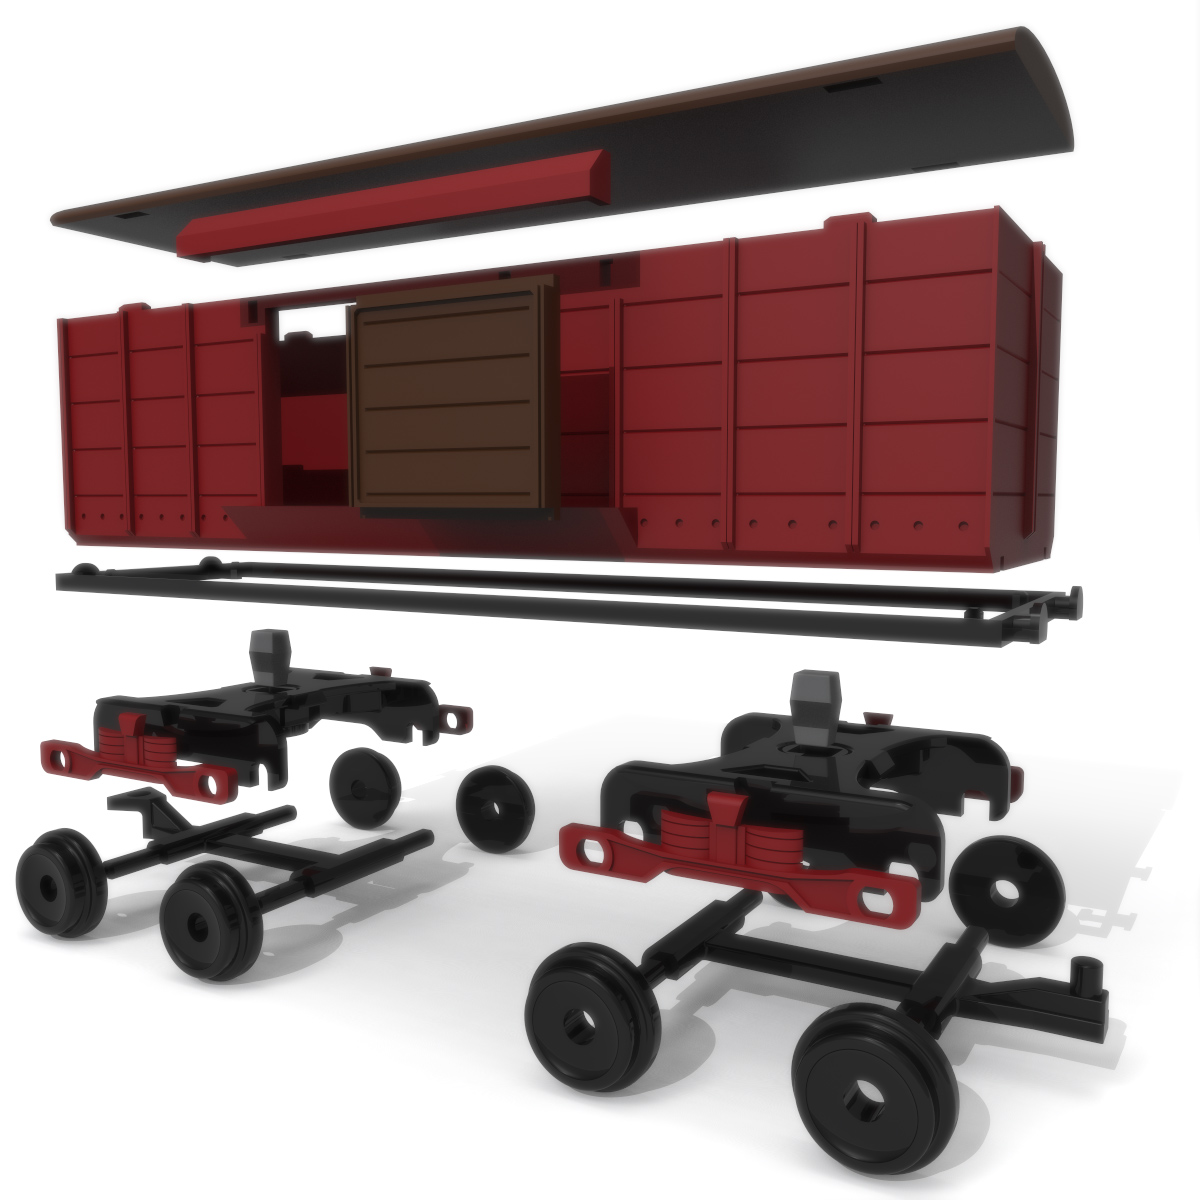 Freight Wagon Exploded, 3D Printer Models